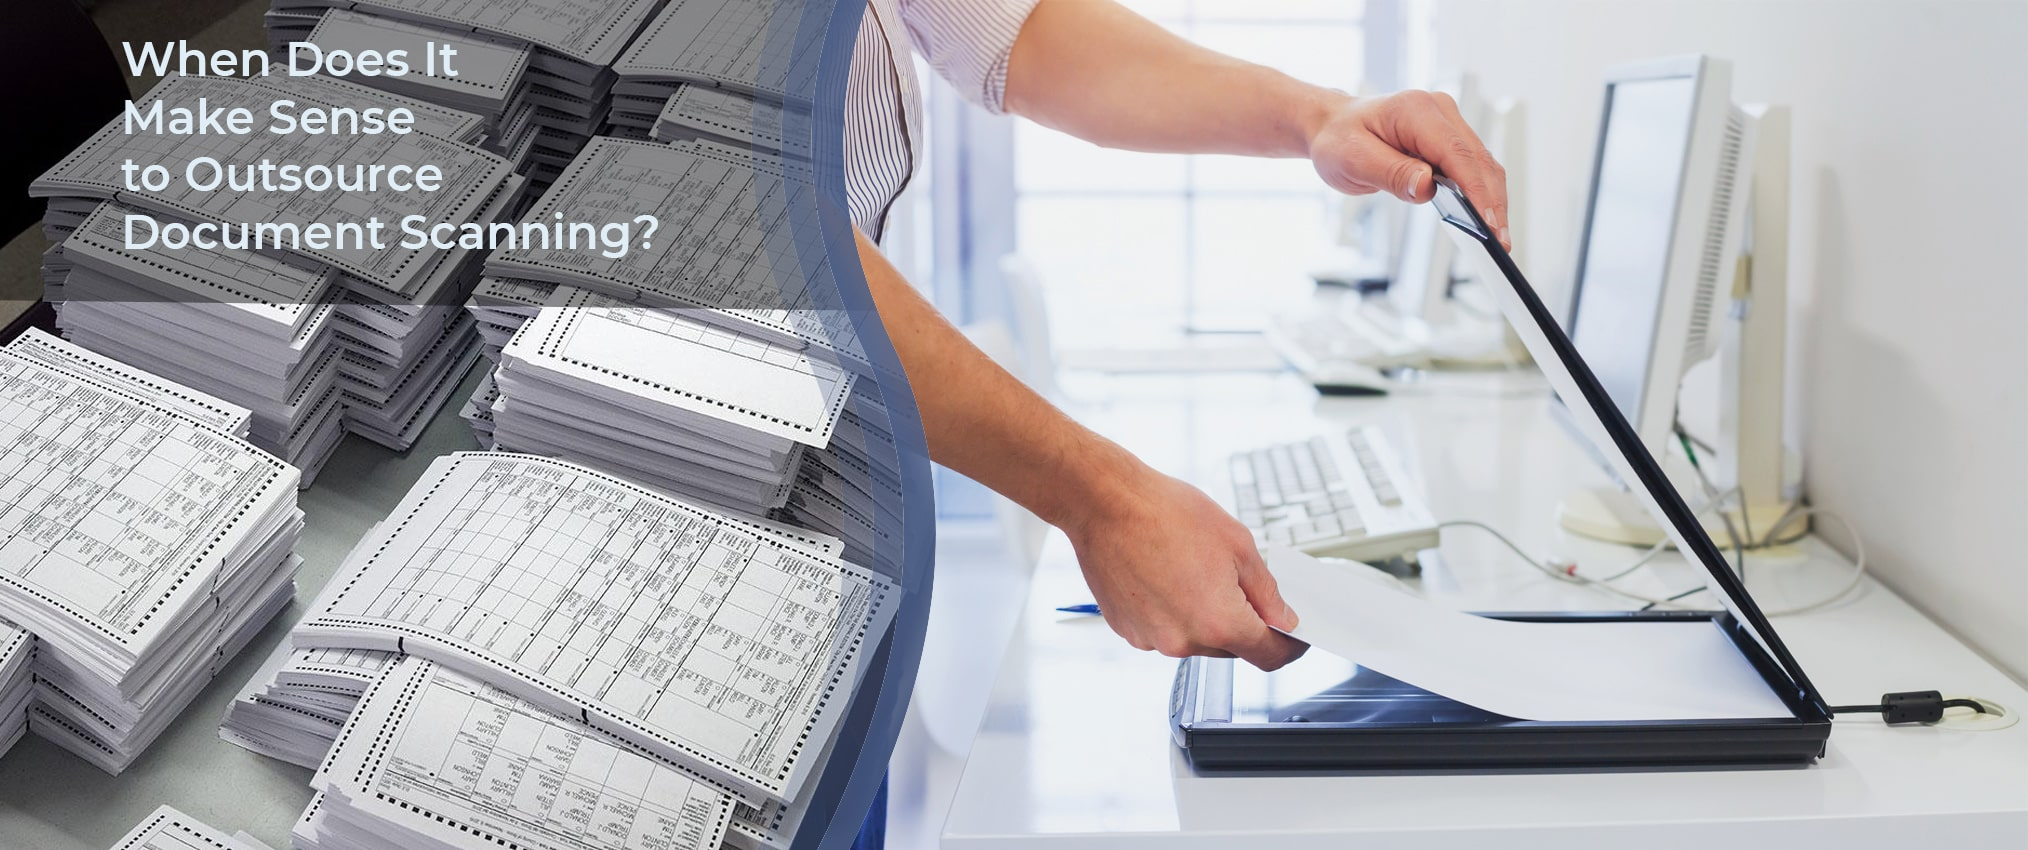 Outsource Document Scanning